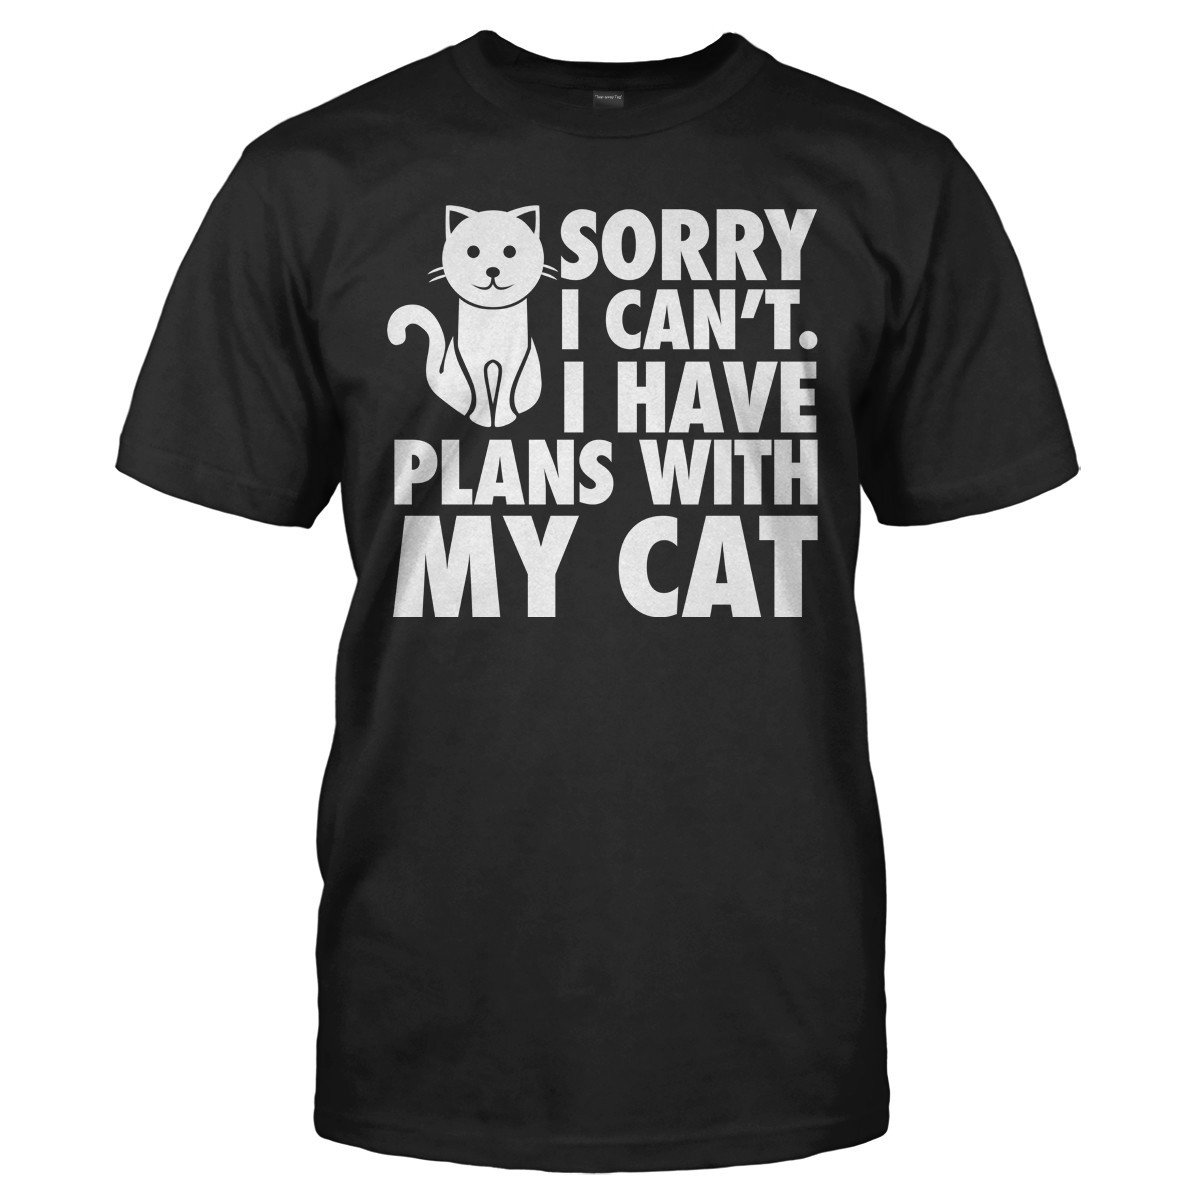 I Have Plans With My Cat - T Shirt